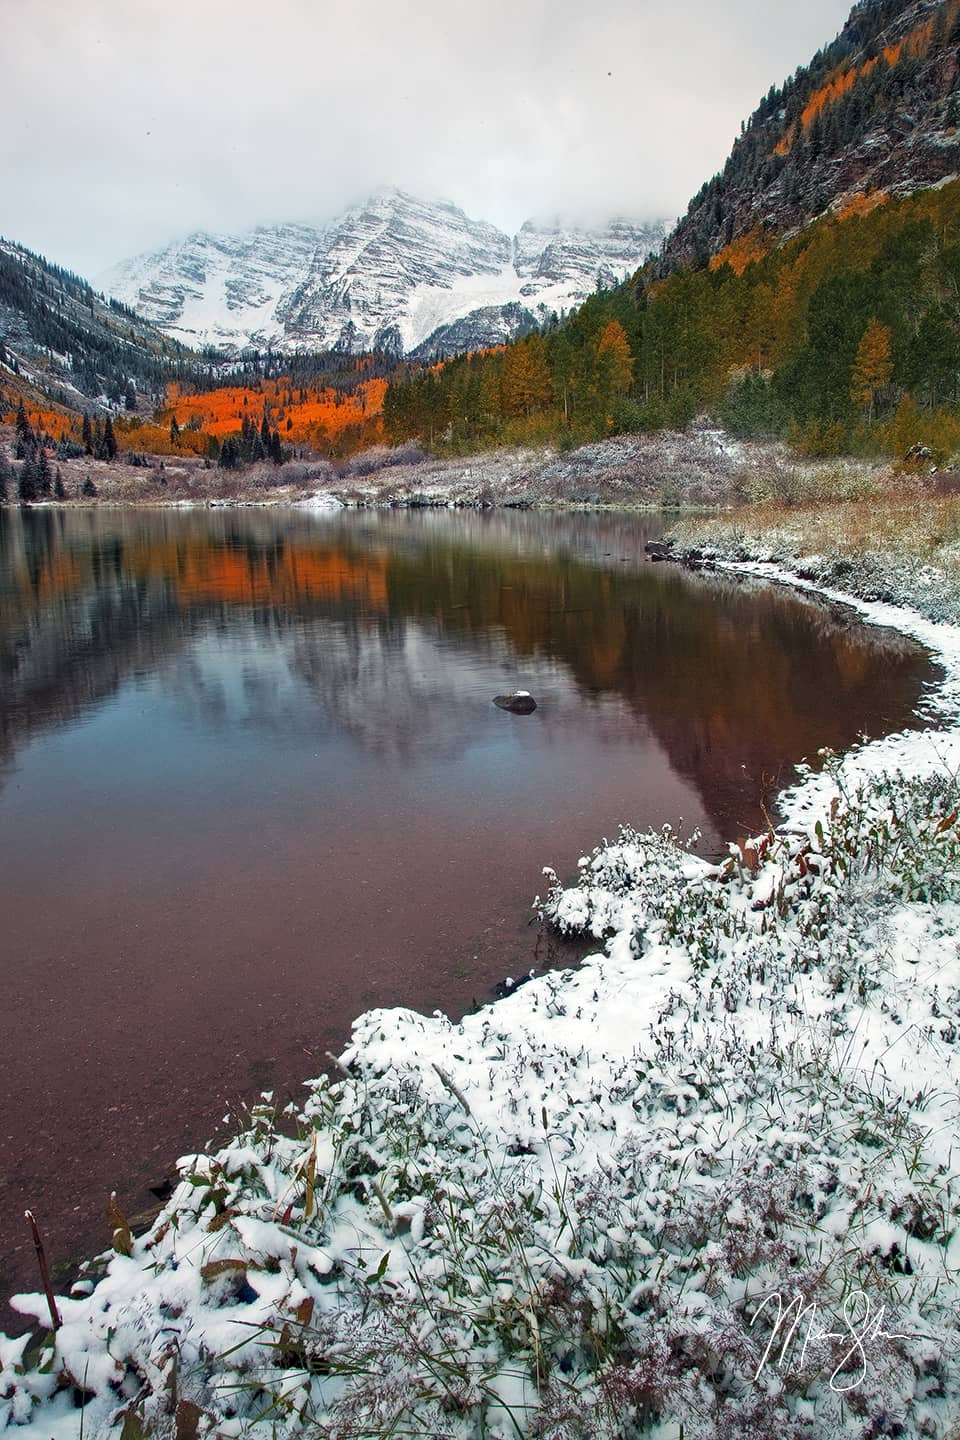 Open edition fine art print of Autumn Snow at the Maroon Bells from Mickey Shannon Photography. Location: Maroon Bells, Aspen, Colorado